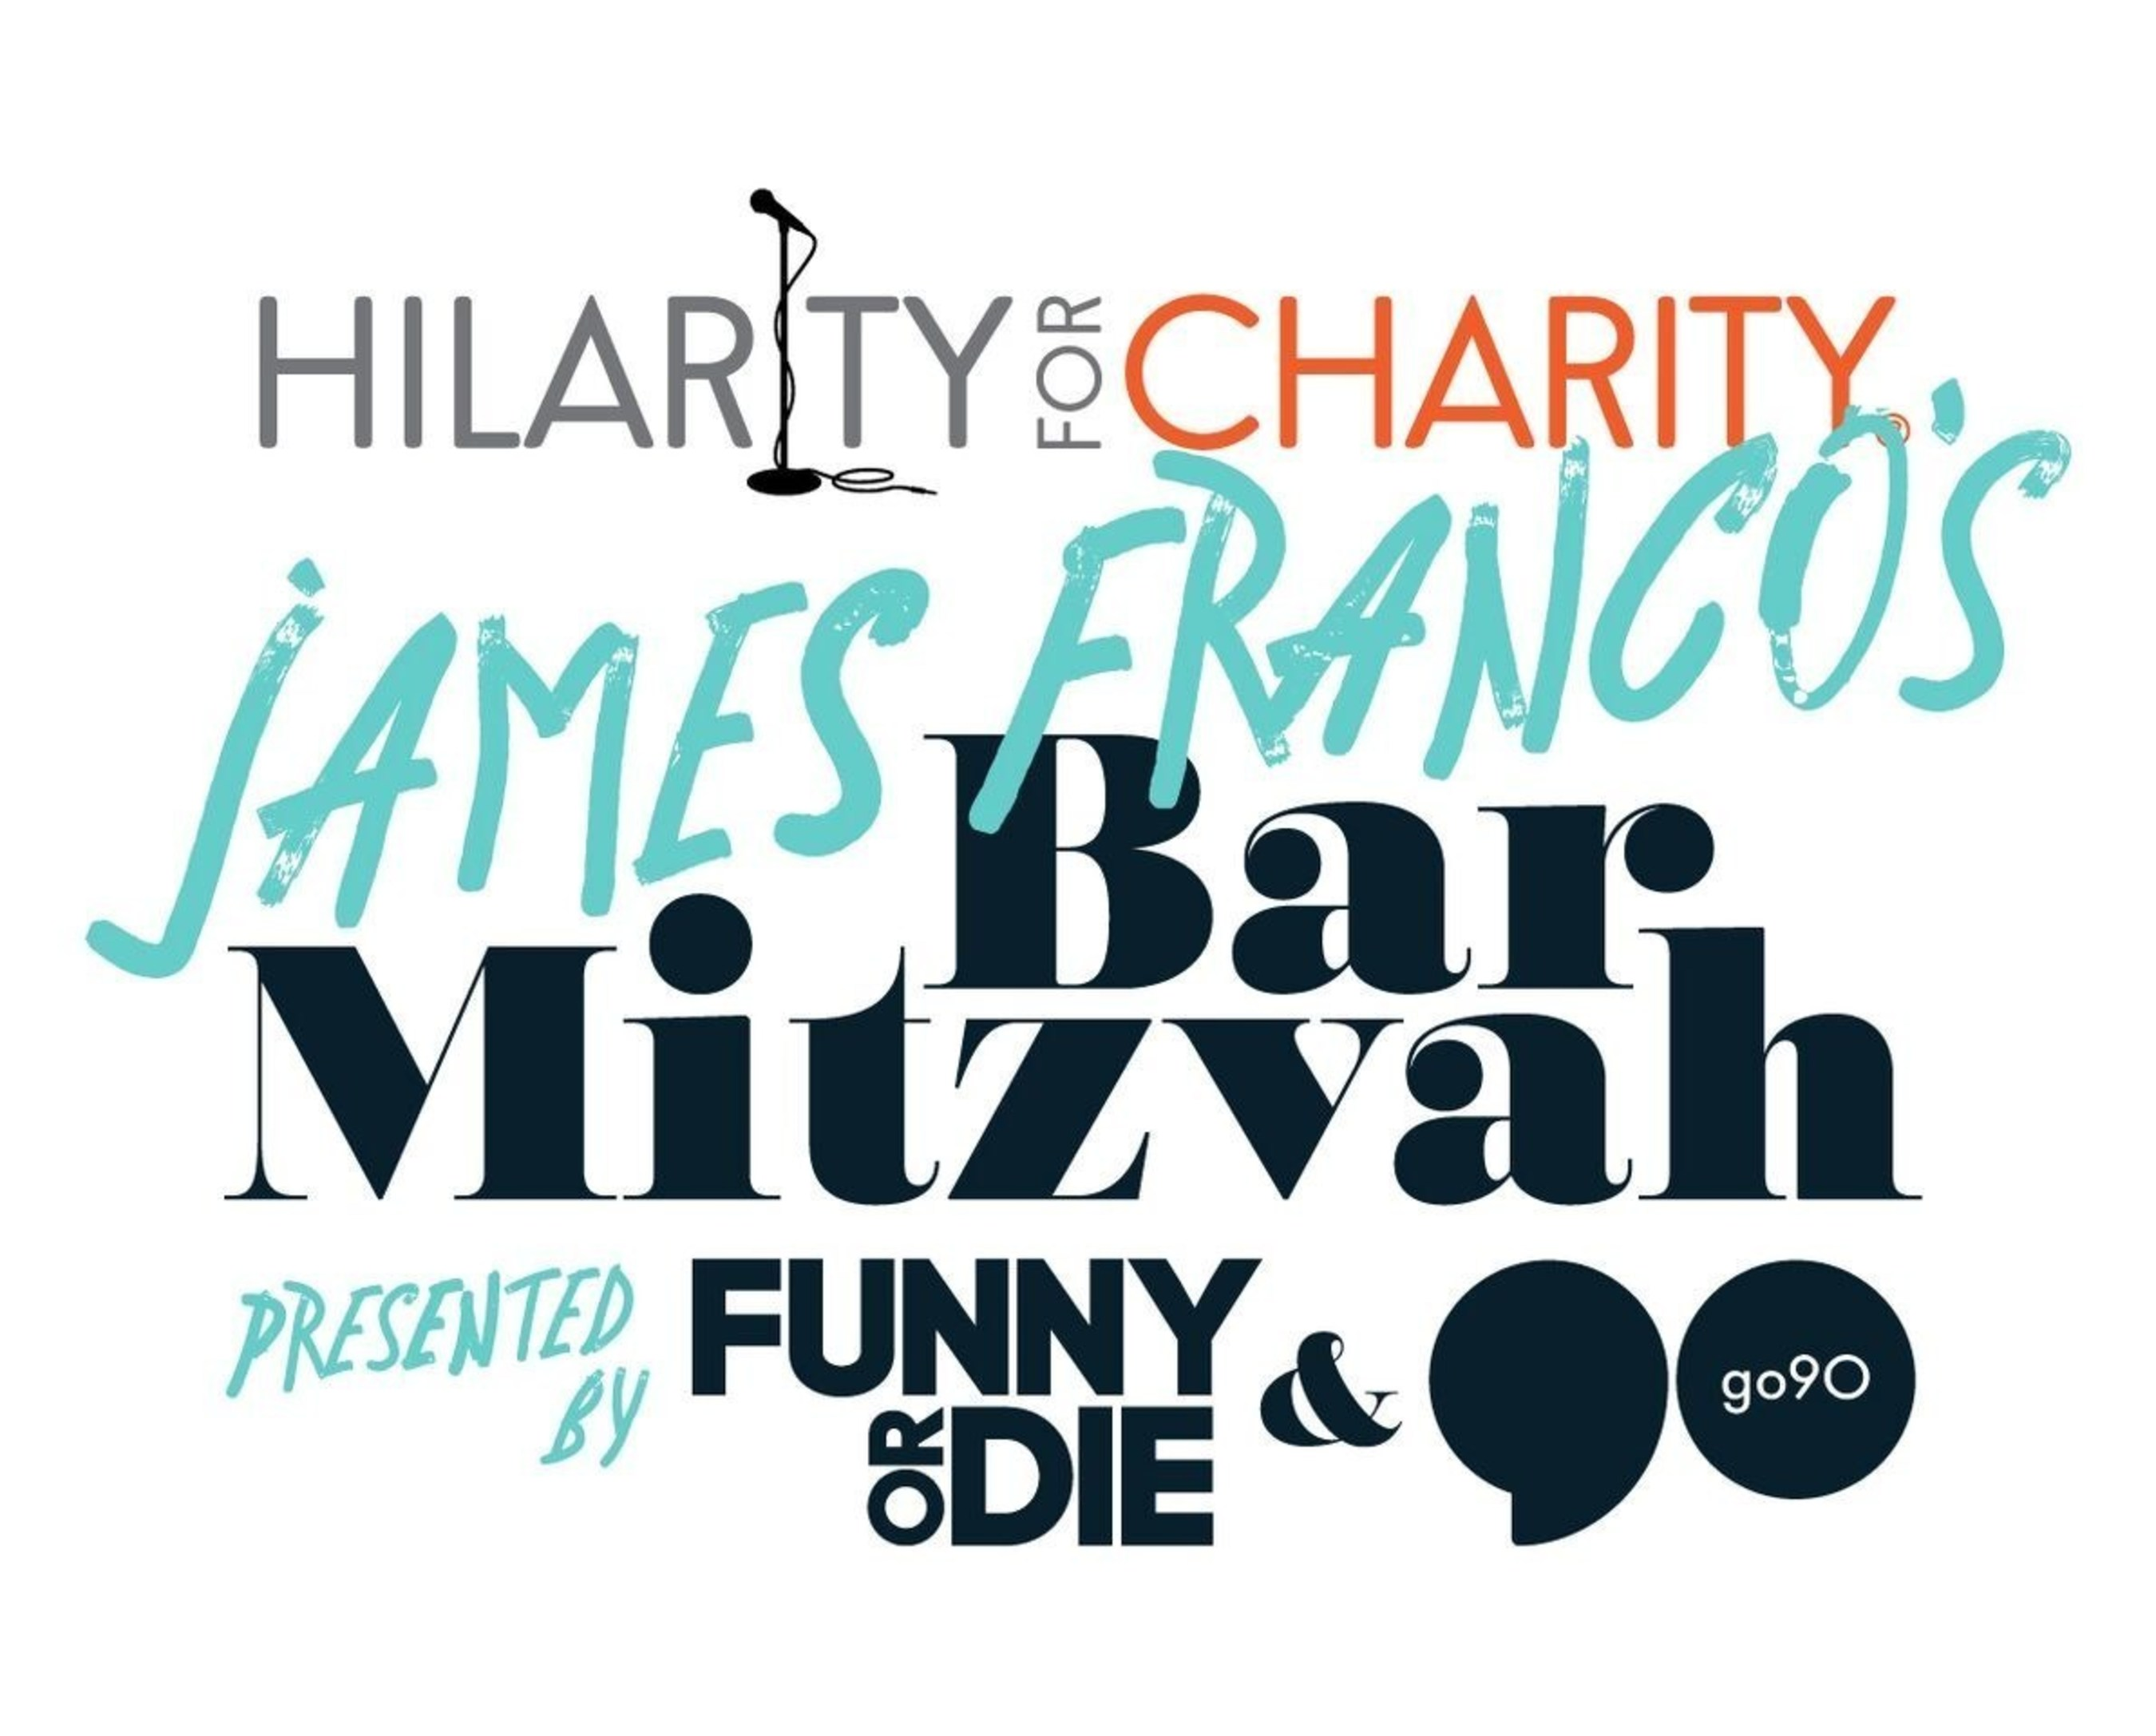 Hilarity For Charity Invites All-Star Comedy Line Up To Welcome James Franco Into Manhood At Fourth Annual Variety Show